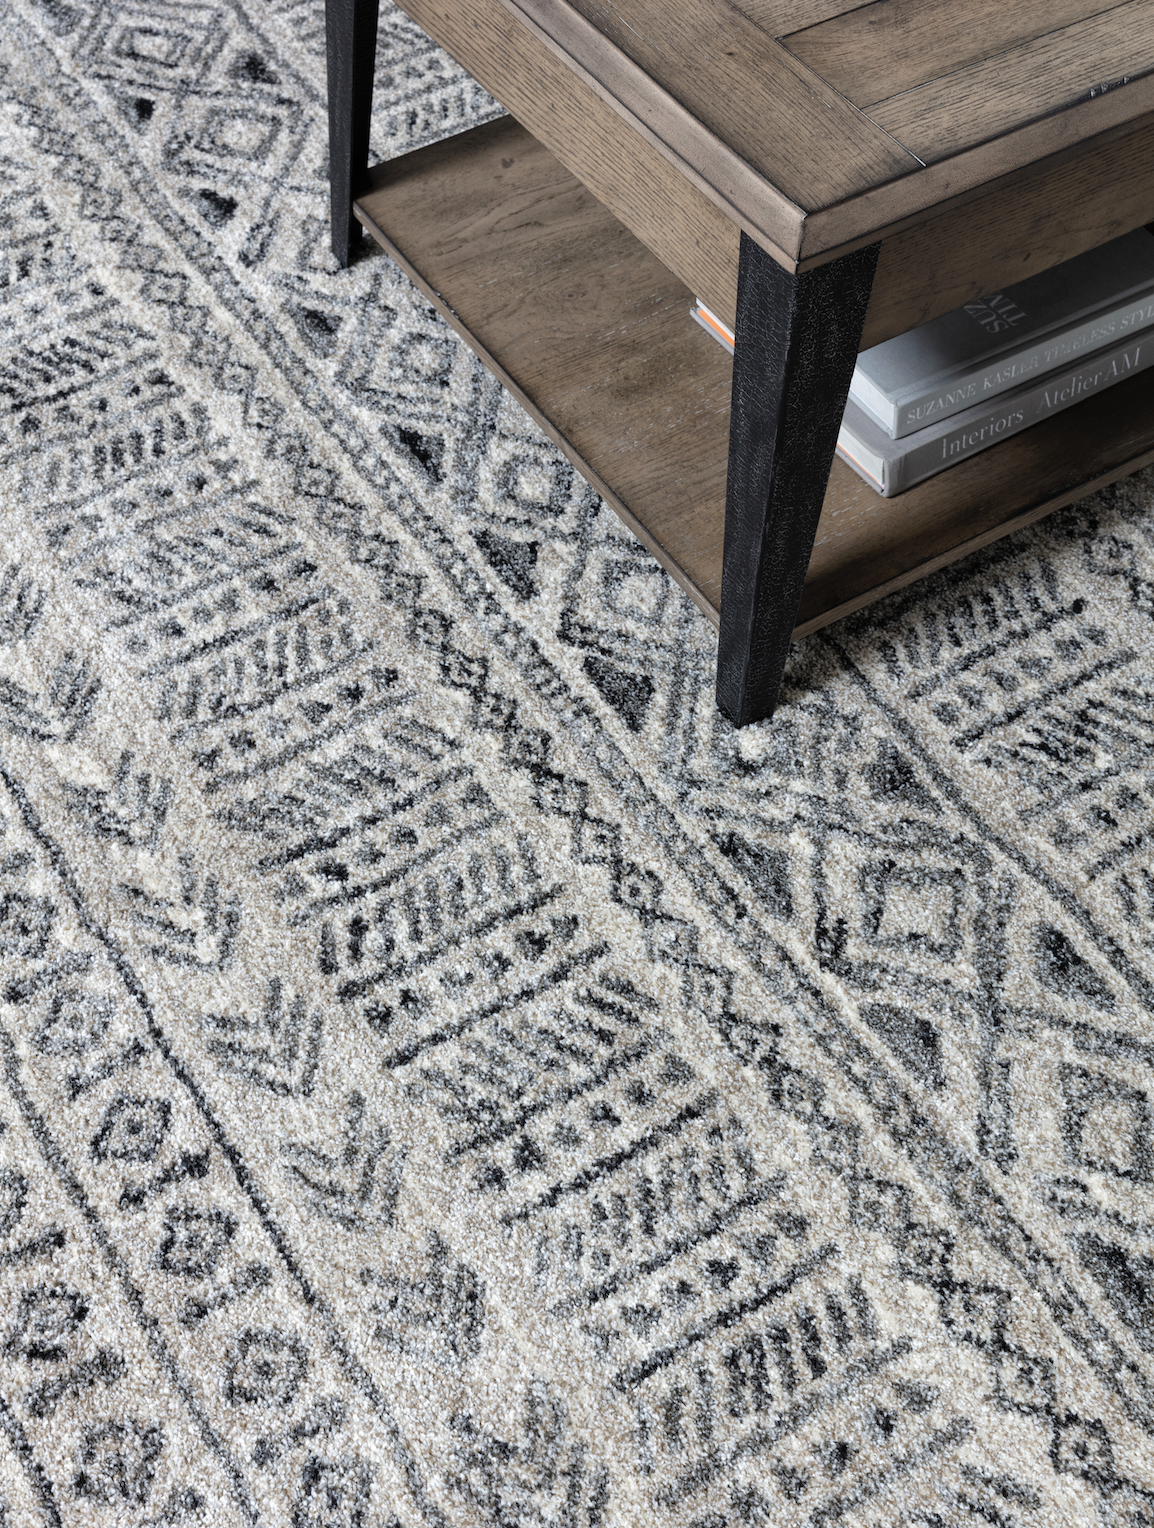 94x134 Rug Hanlin Blue Ivory In 2020 Target Area Rugs Large Area Rugs Area Rugs Cheap